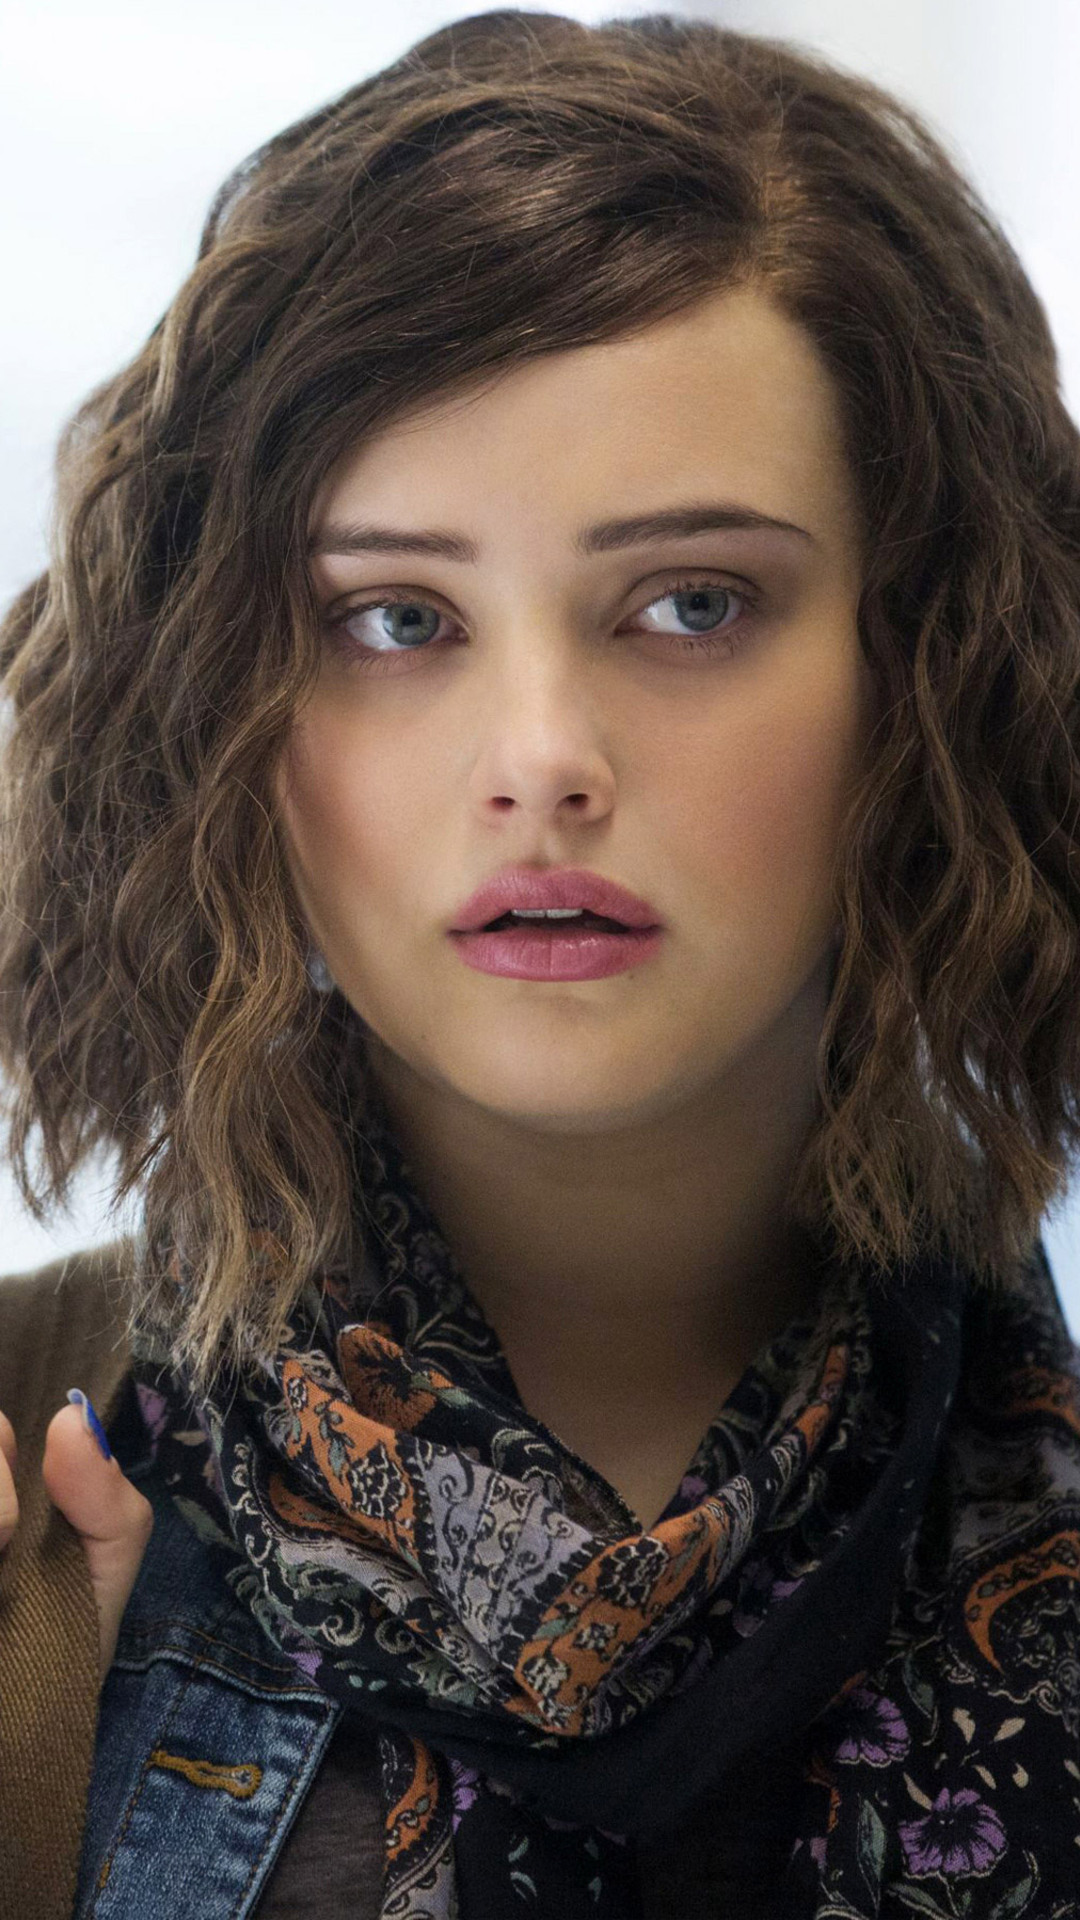 1080x1920 katherine langford as hannah in 13 reasons why iphone 7 6s 6 plus pixel xl one plus - 13 reasons why download ...